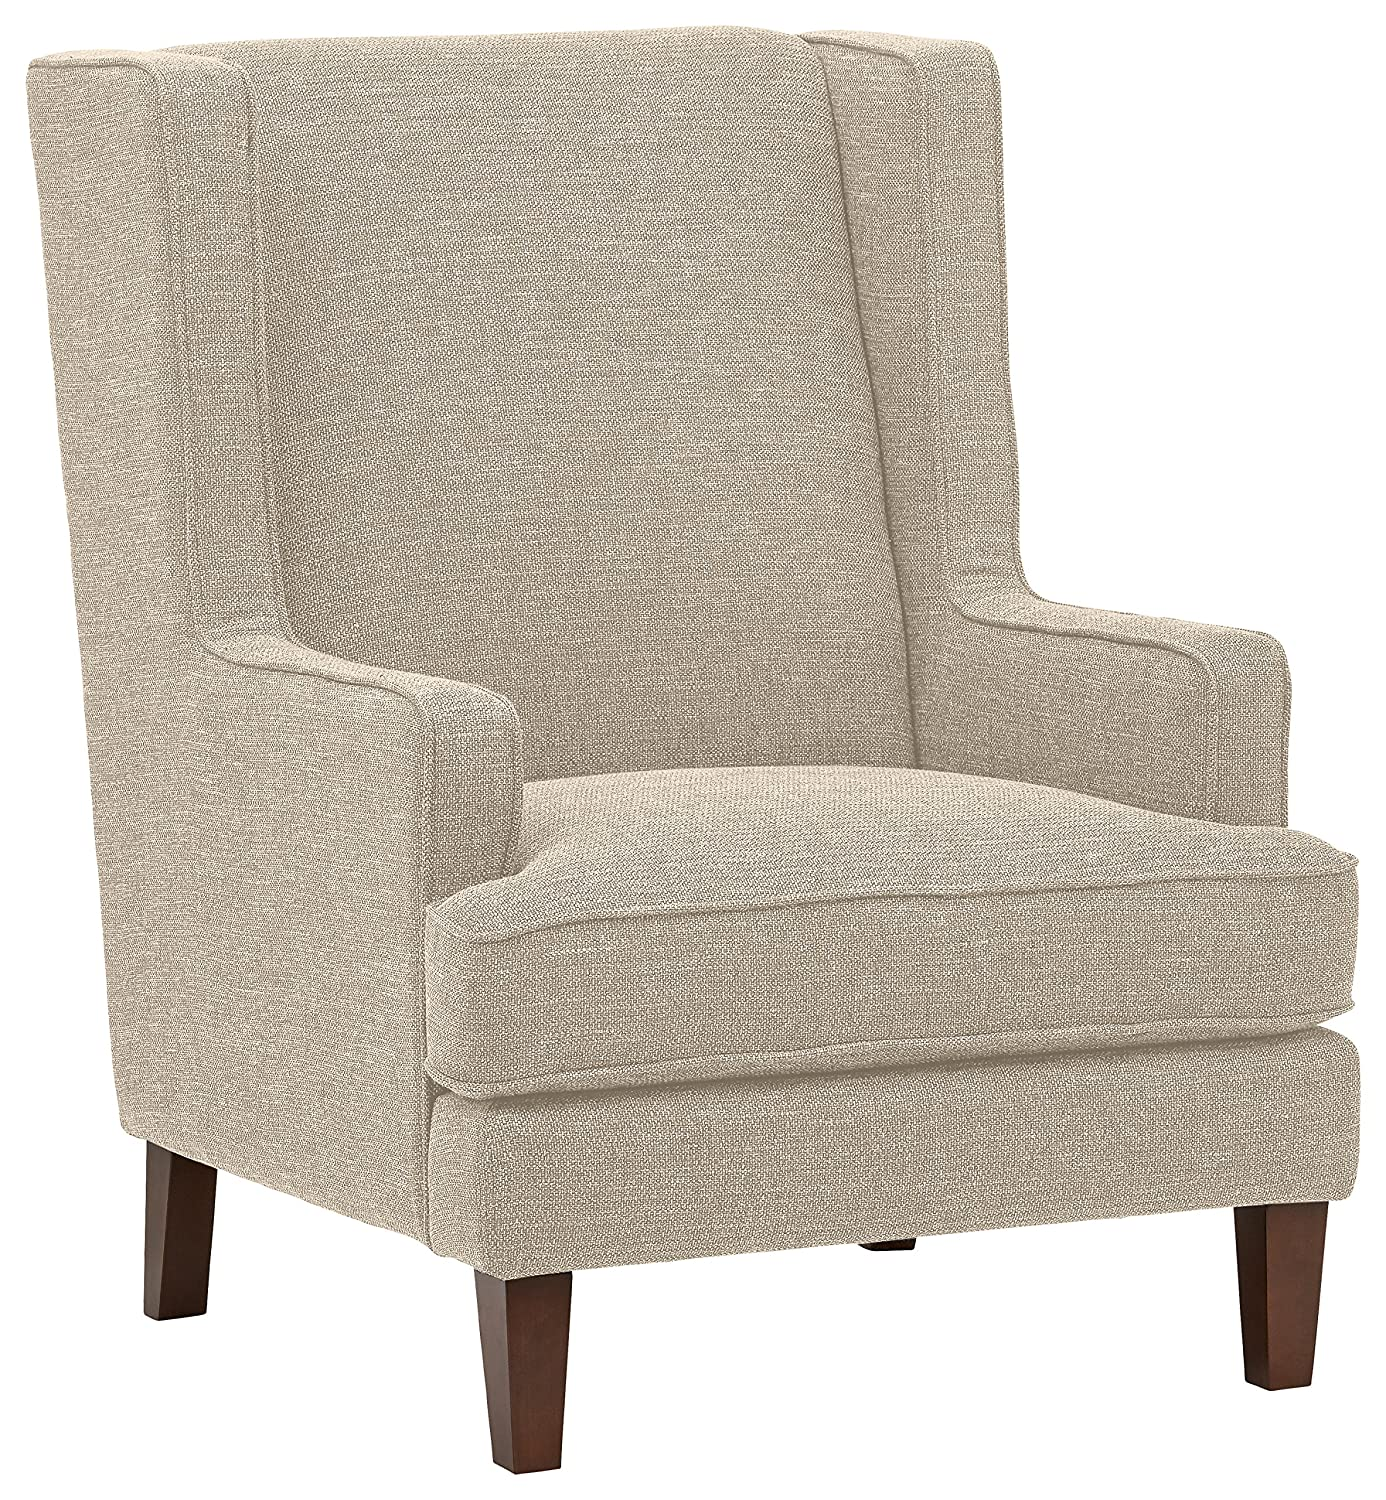 Accent Chairs Wingback.Stone Beam Highland Modern Wingback Accent Chair 32 W Oatmeal